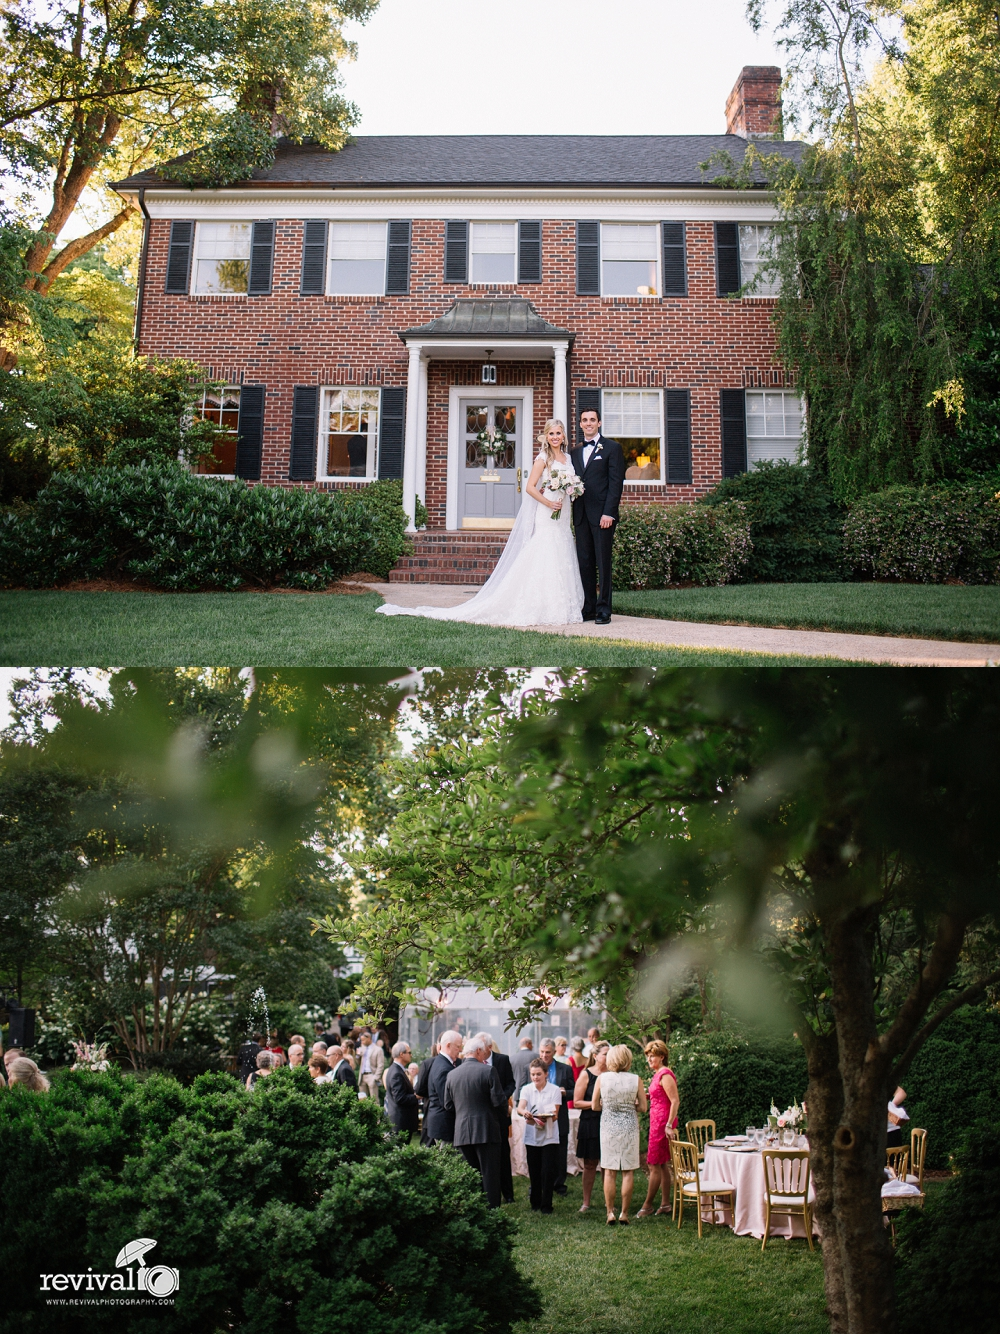 Audrey + Joe: A Classic Southern Wedding Celebration in Hickory, North Carolina NC Wedding Photographers Revival Photography Husband and Wife Team www.revivalphotography.com